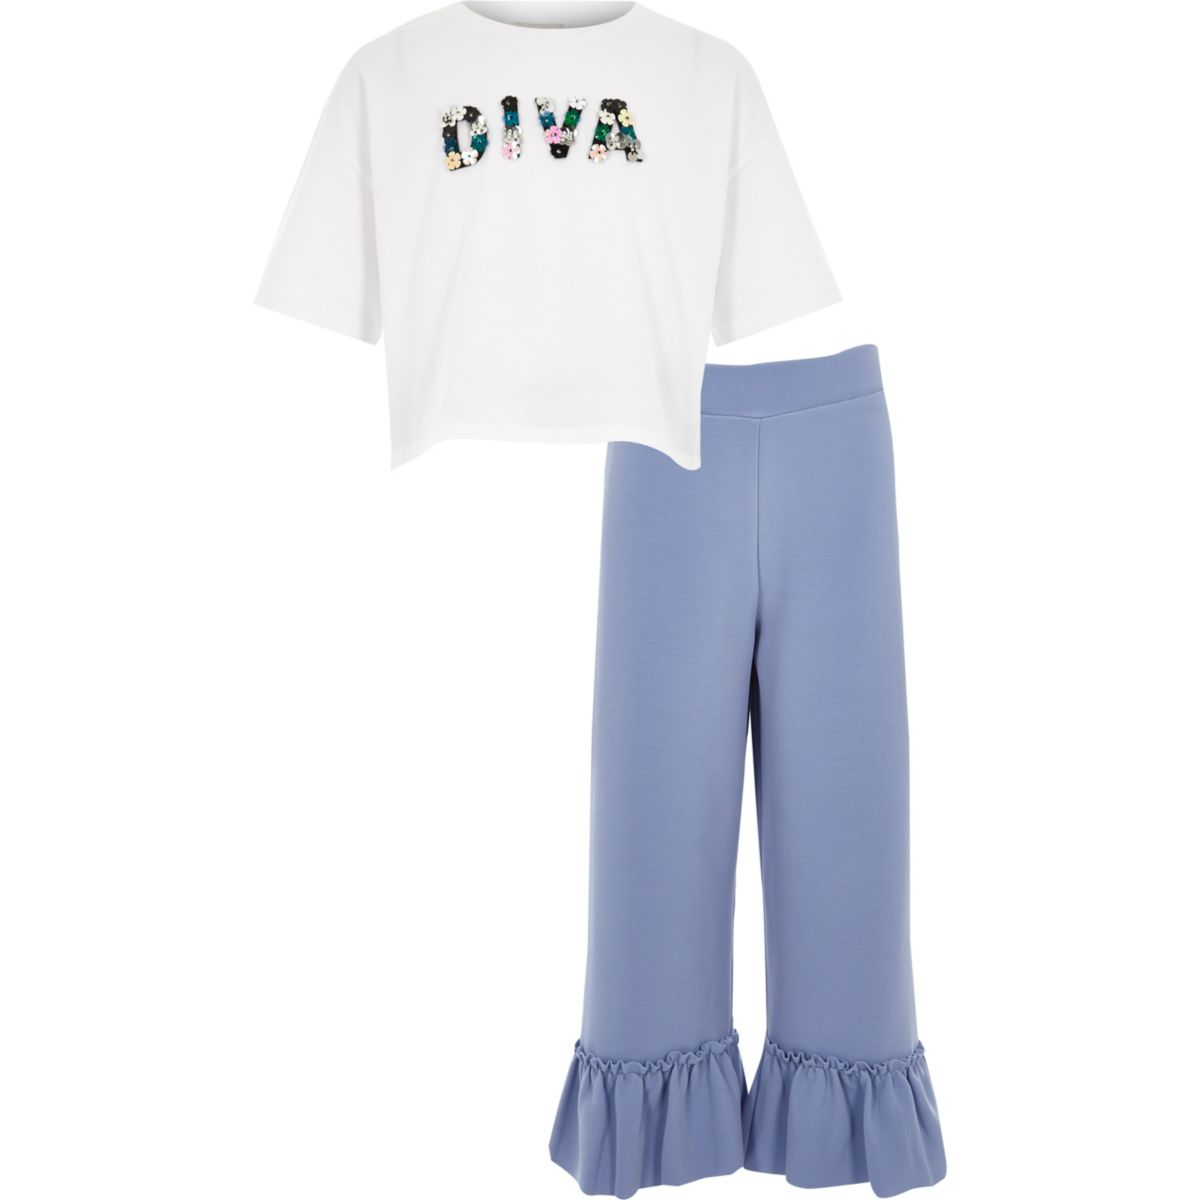 """Weißes Outfit mit T-Shirt """"diva"""""""